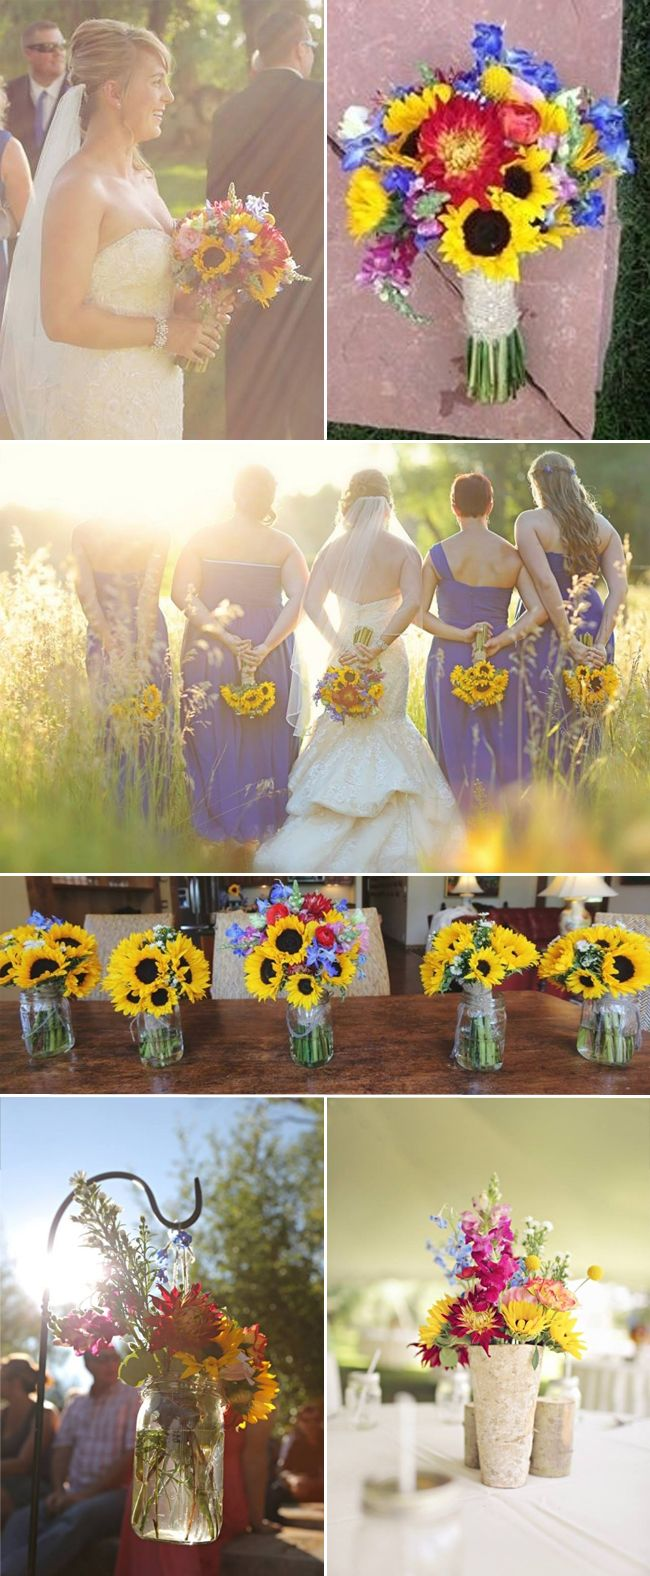 Rustic Sunflower Wedding with Pops of Color ....if we're having a summer wedding!